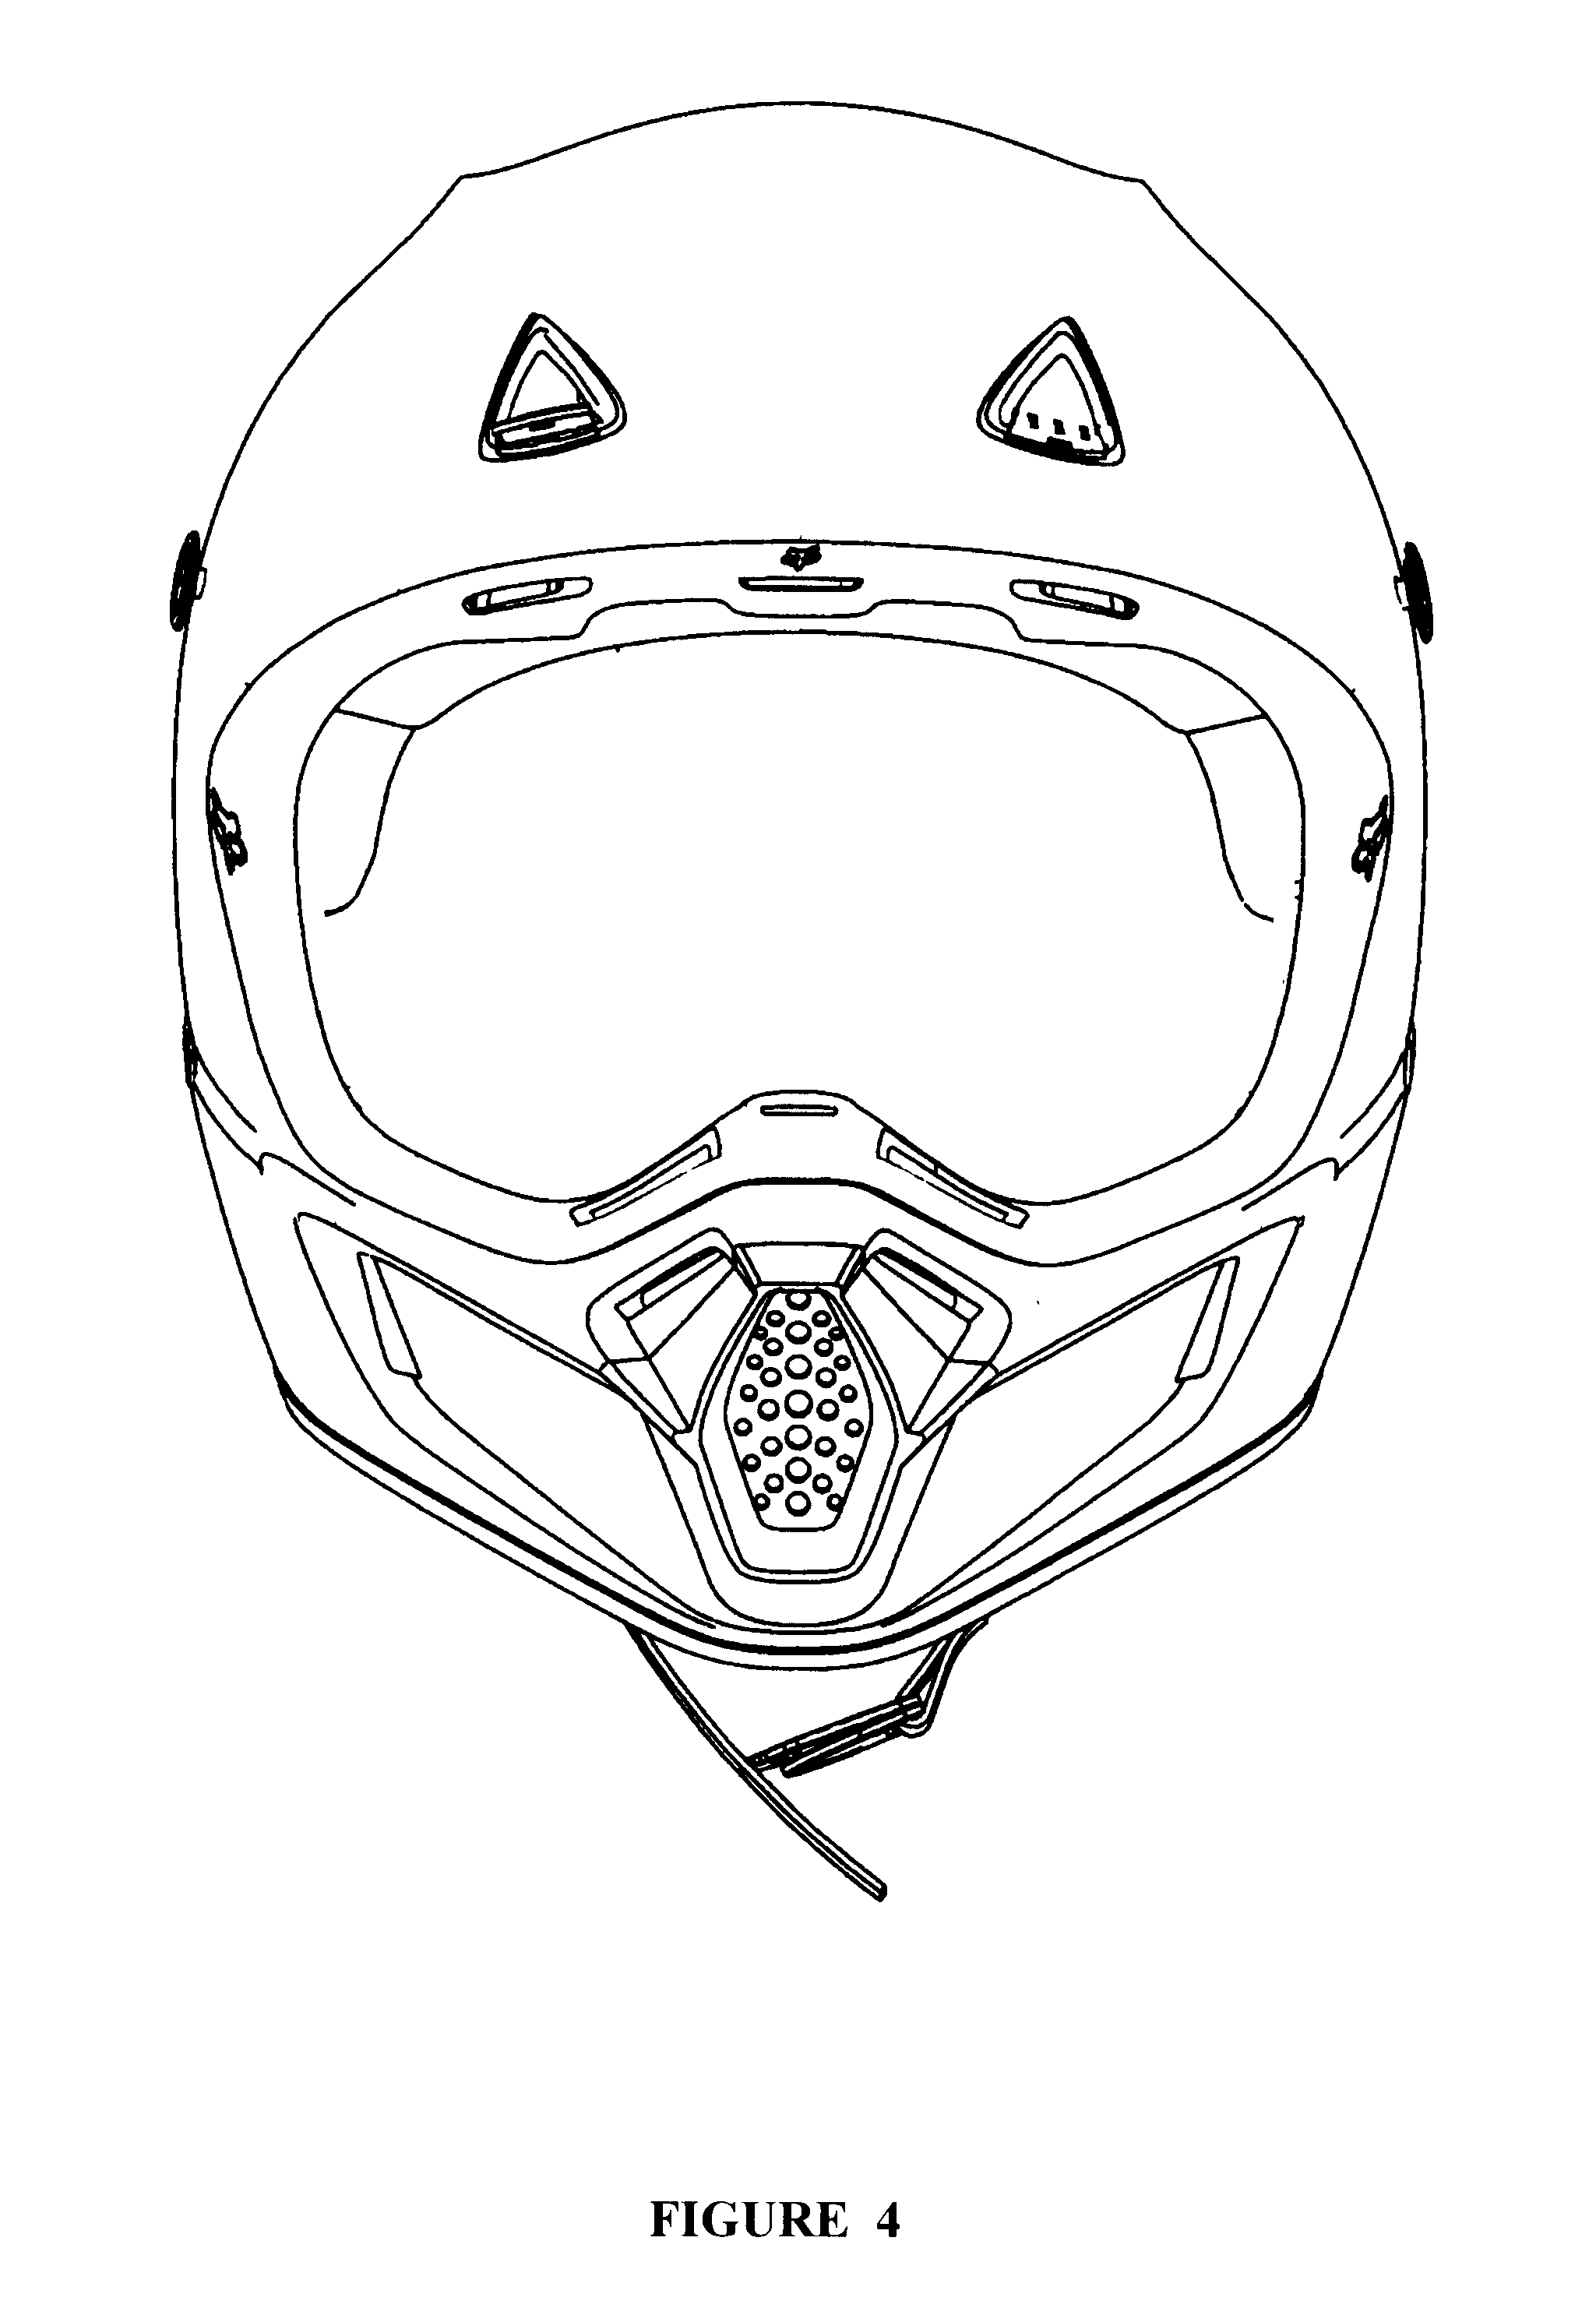 advanced motorcycle coloring pages - photo#36